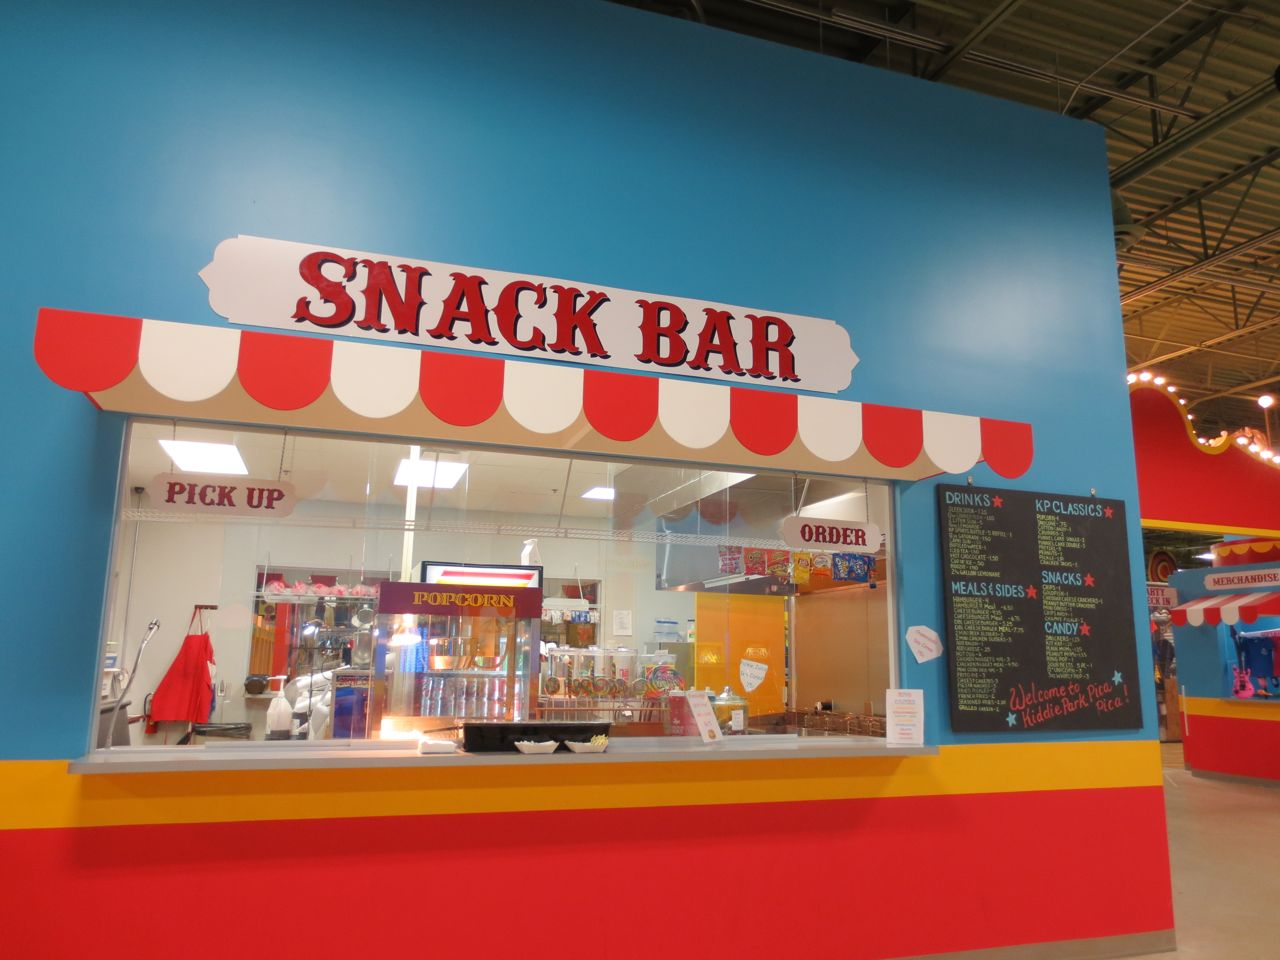 Snack bar at Kiddie Park PicaPica at PicaPica Plaza San Antonio Texas ...